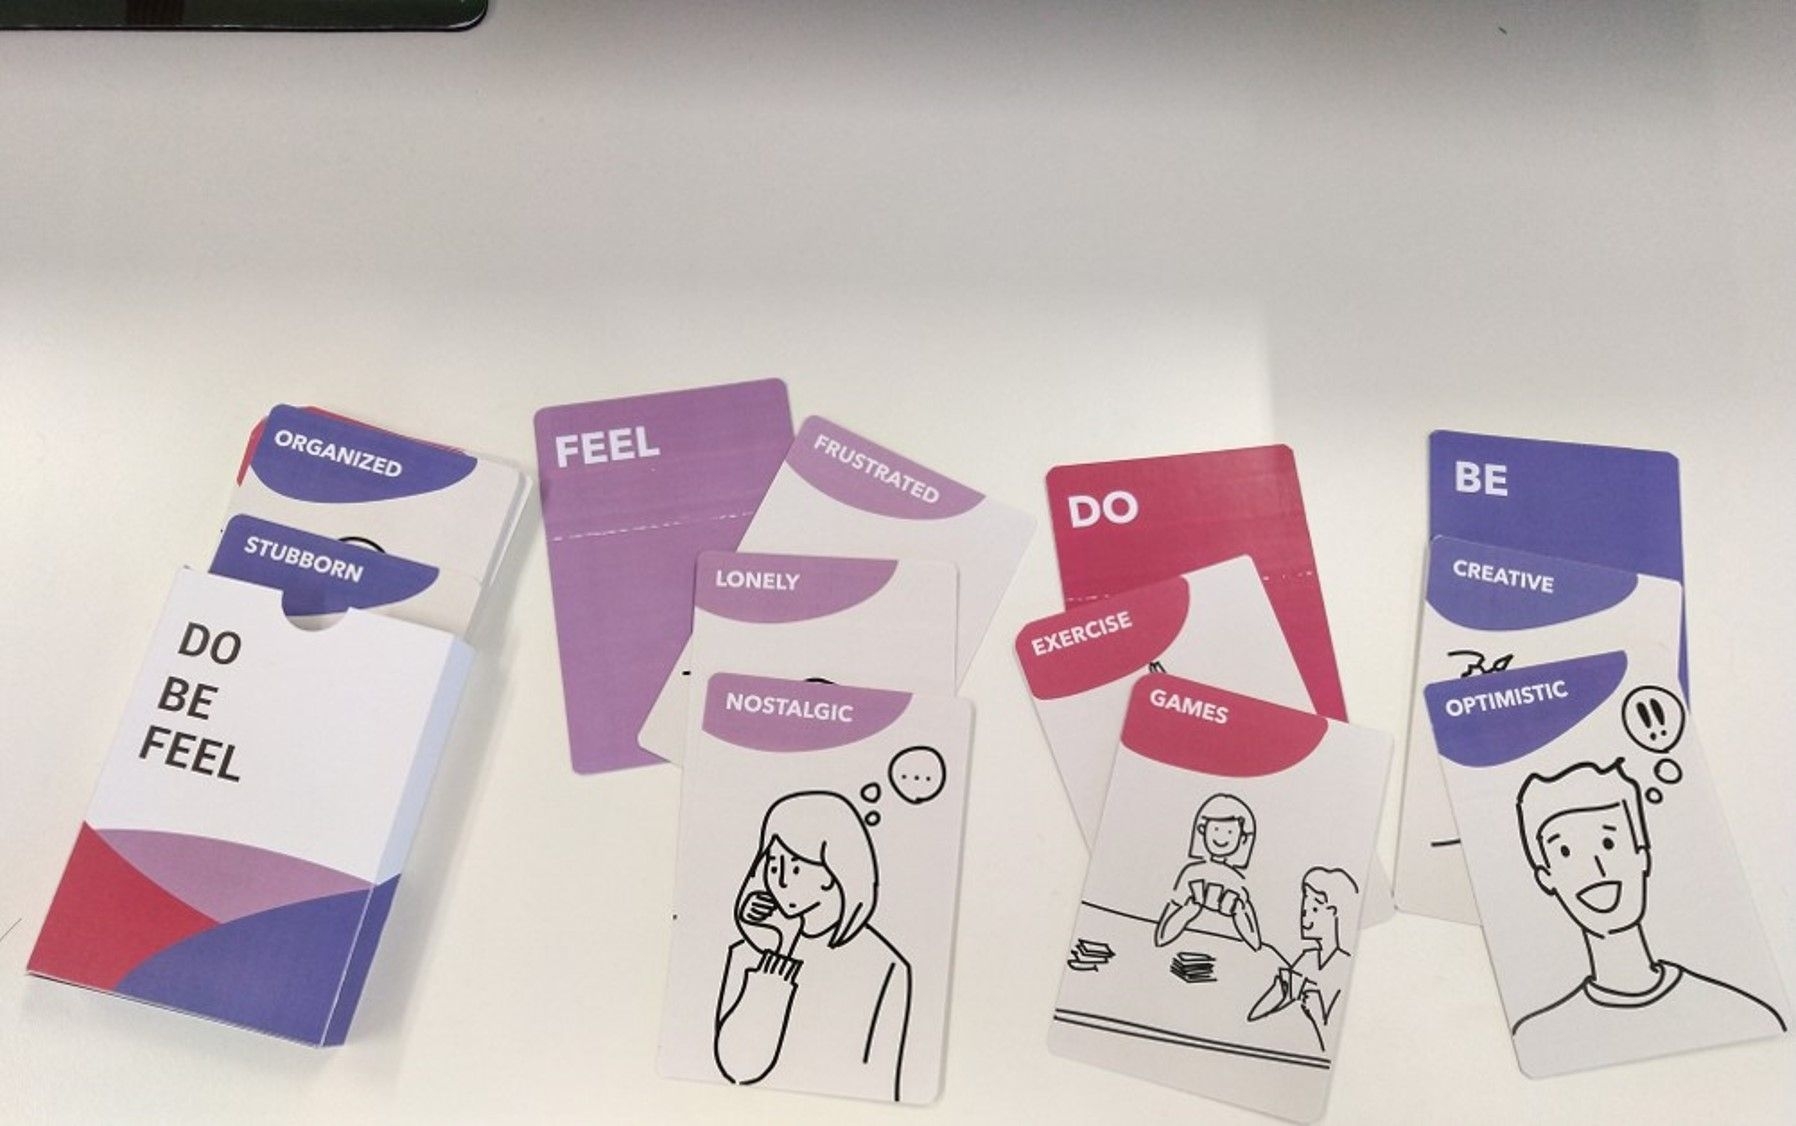 Deck of Project Motivational Goal Modelling Communication Cards - DoBeFeel